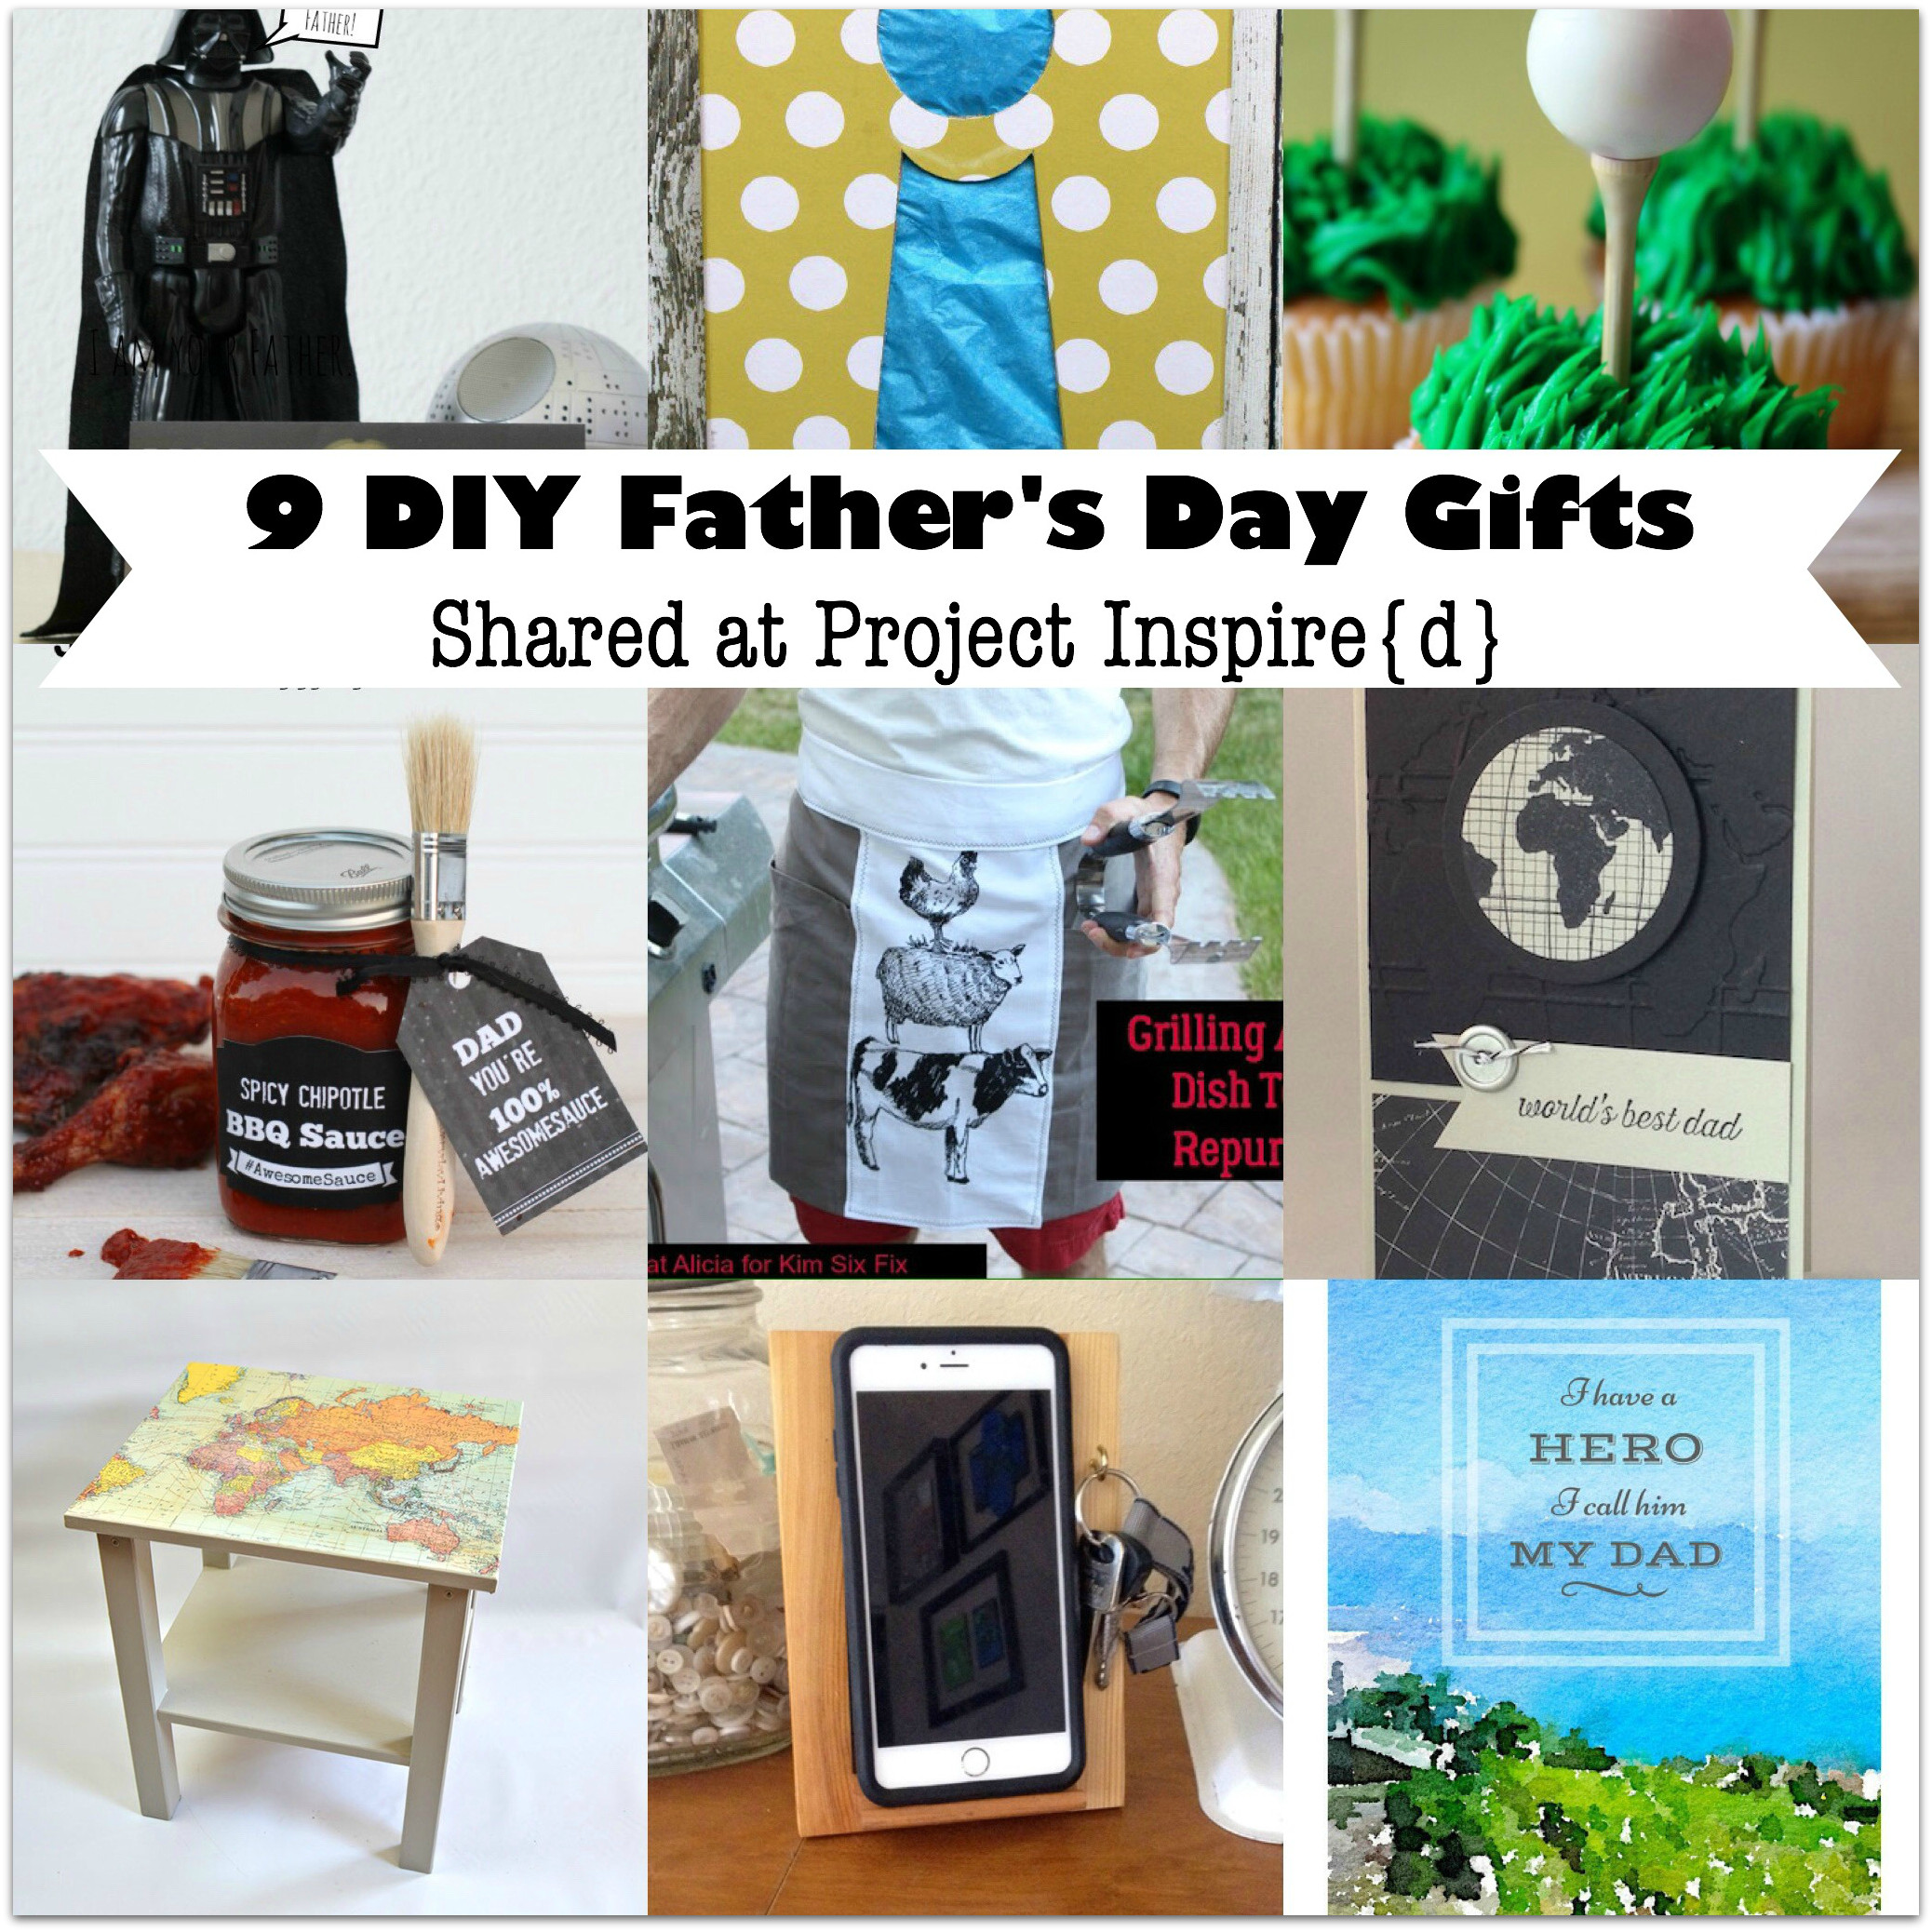 Best ideas about Father'S Day Diy Gift Ideas . Save or Pin 9 DIY Father s Day Gift Ideas Now.